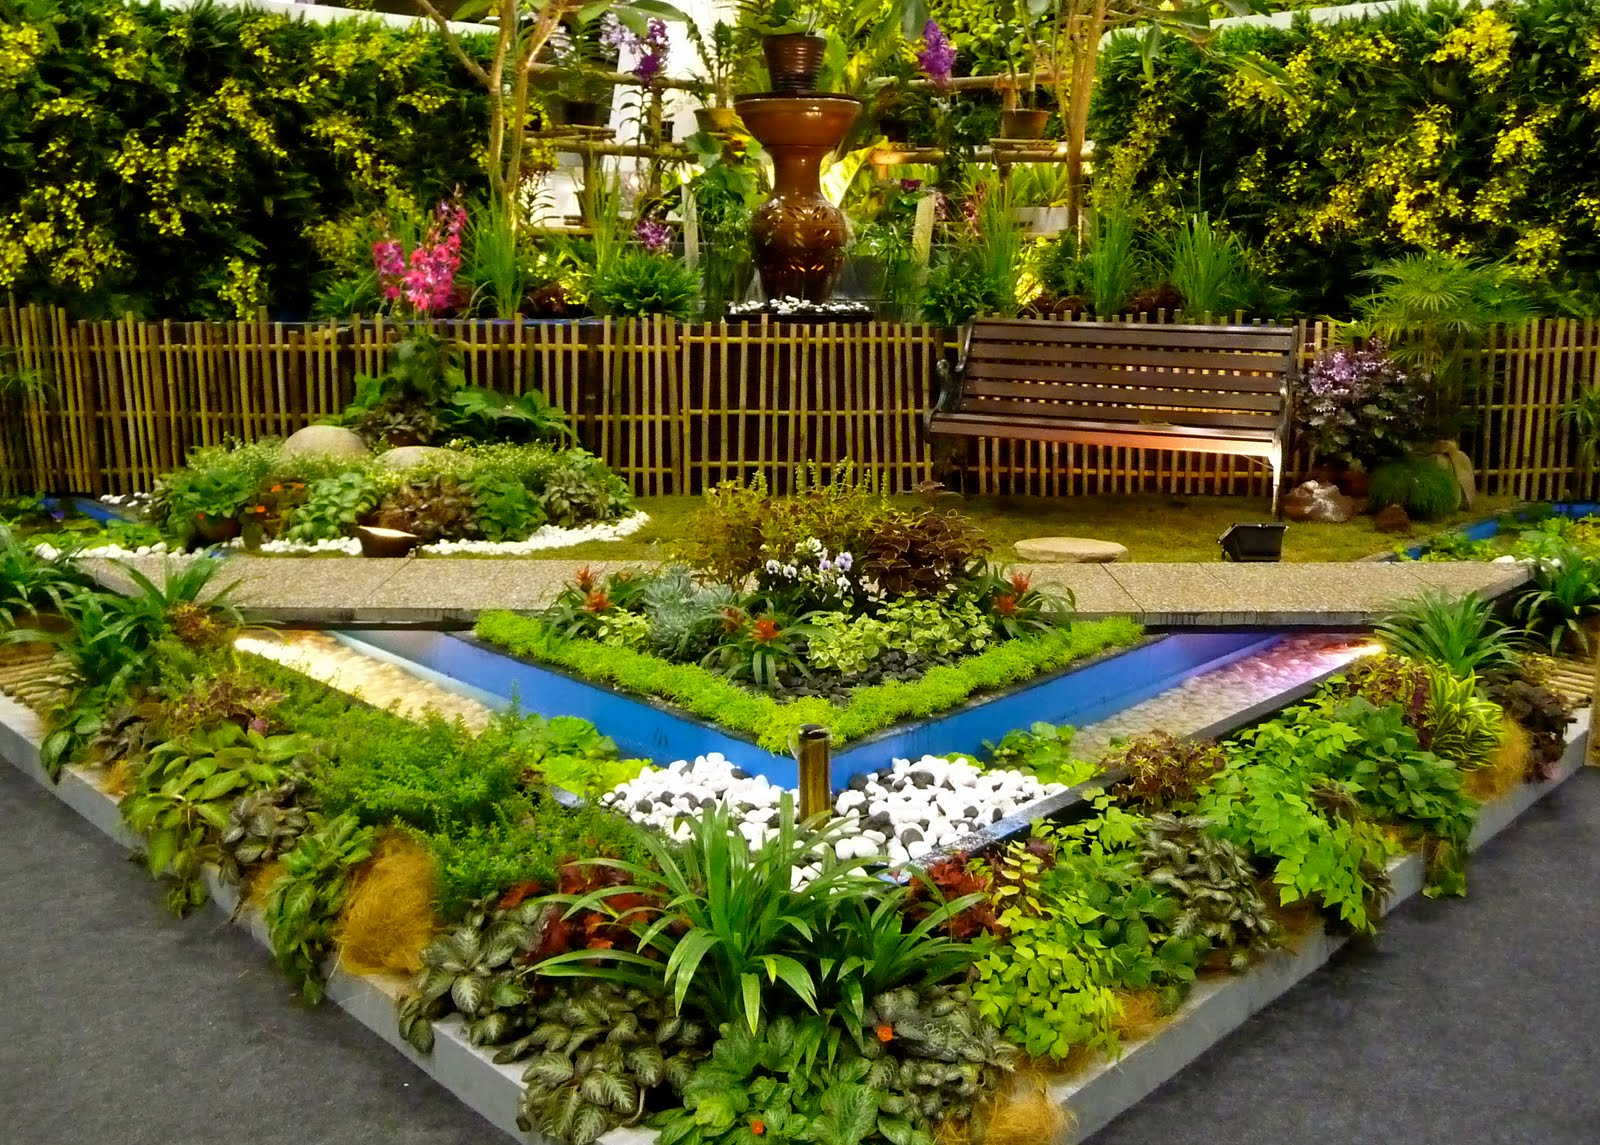 Good home ideas asia 39 s best garden and flower show returns for Best home garden design